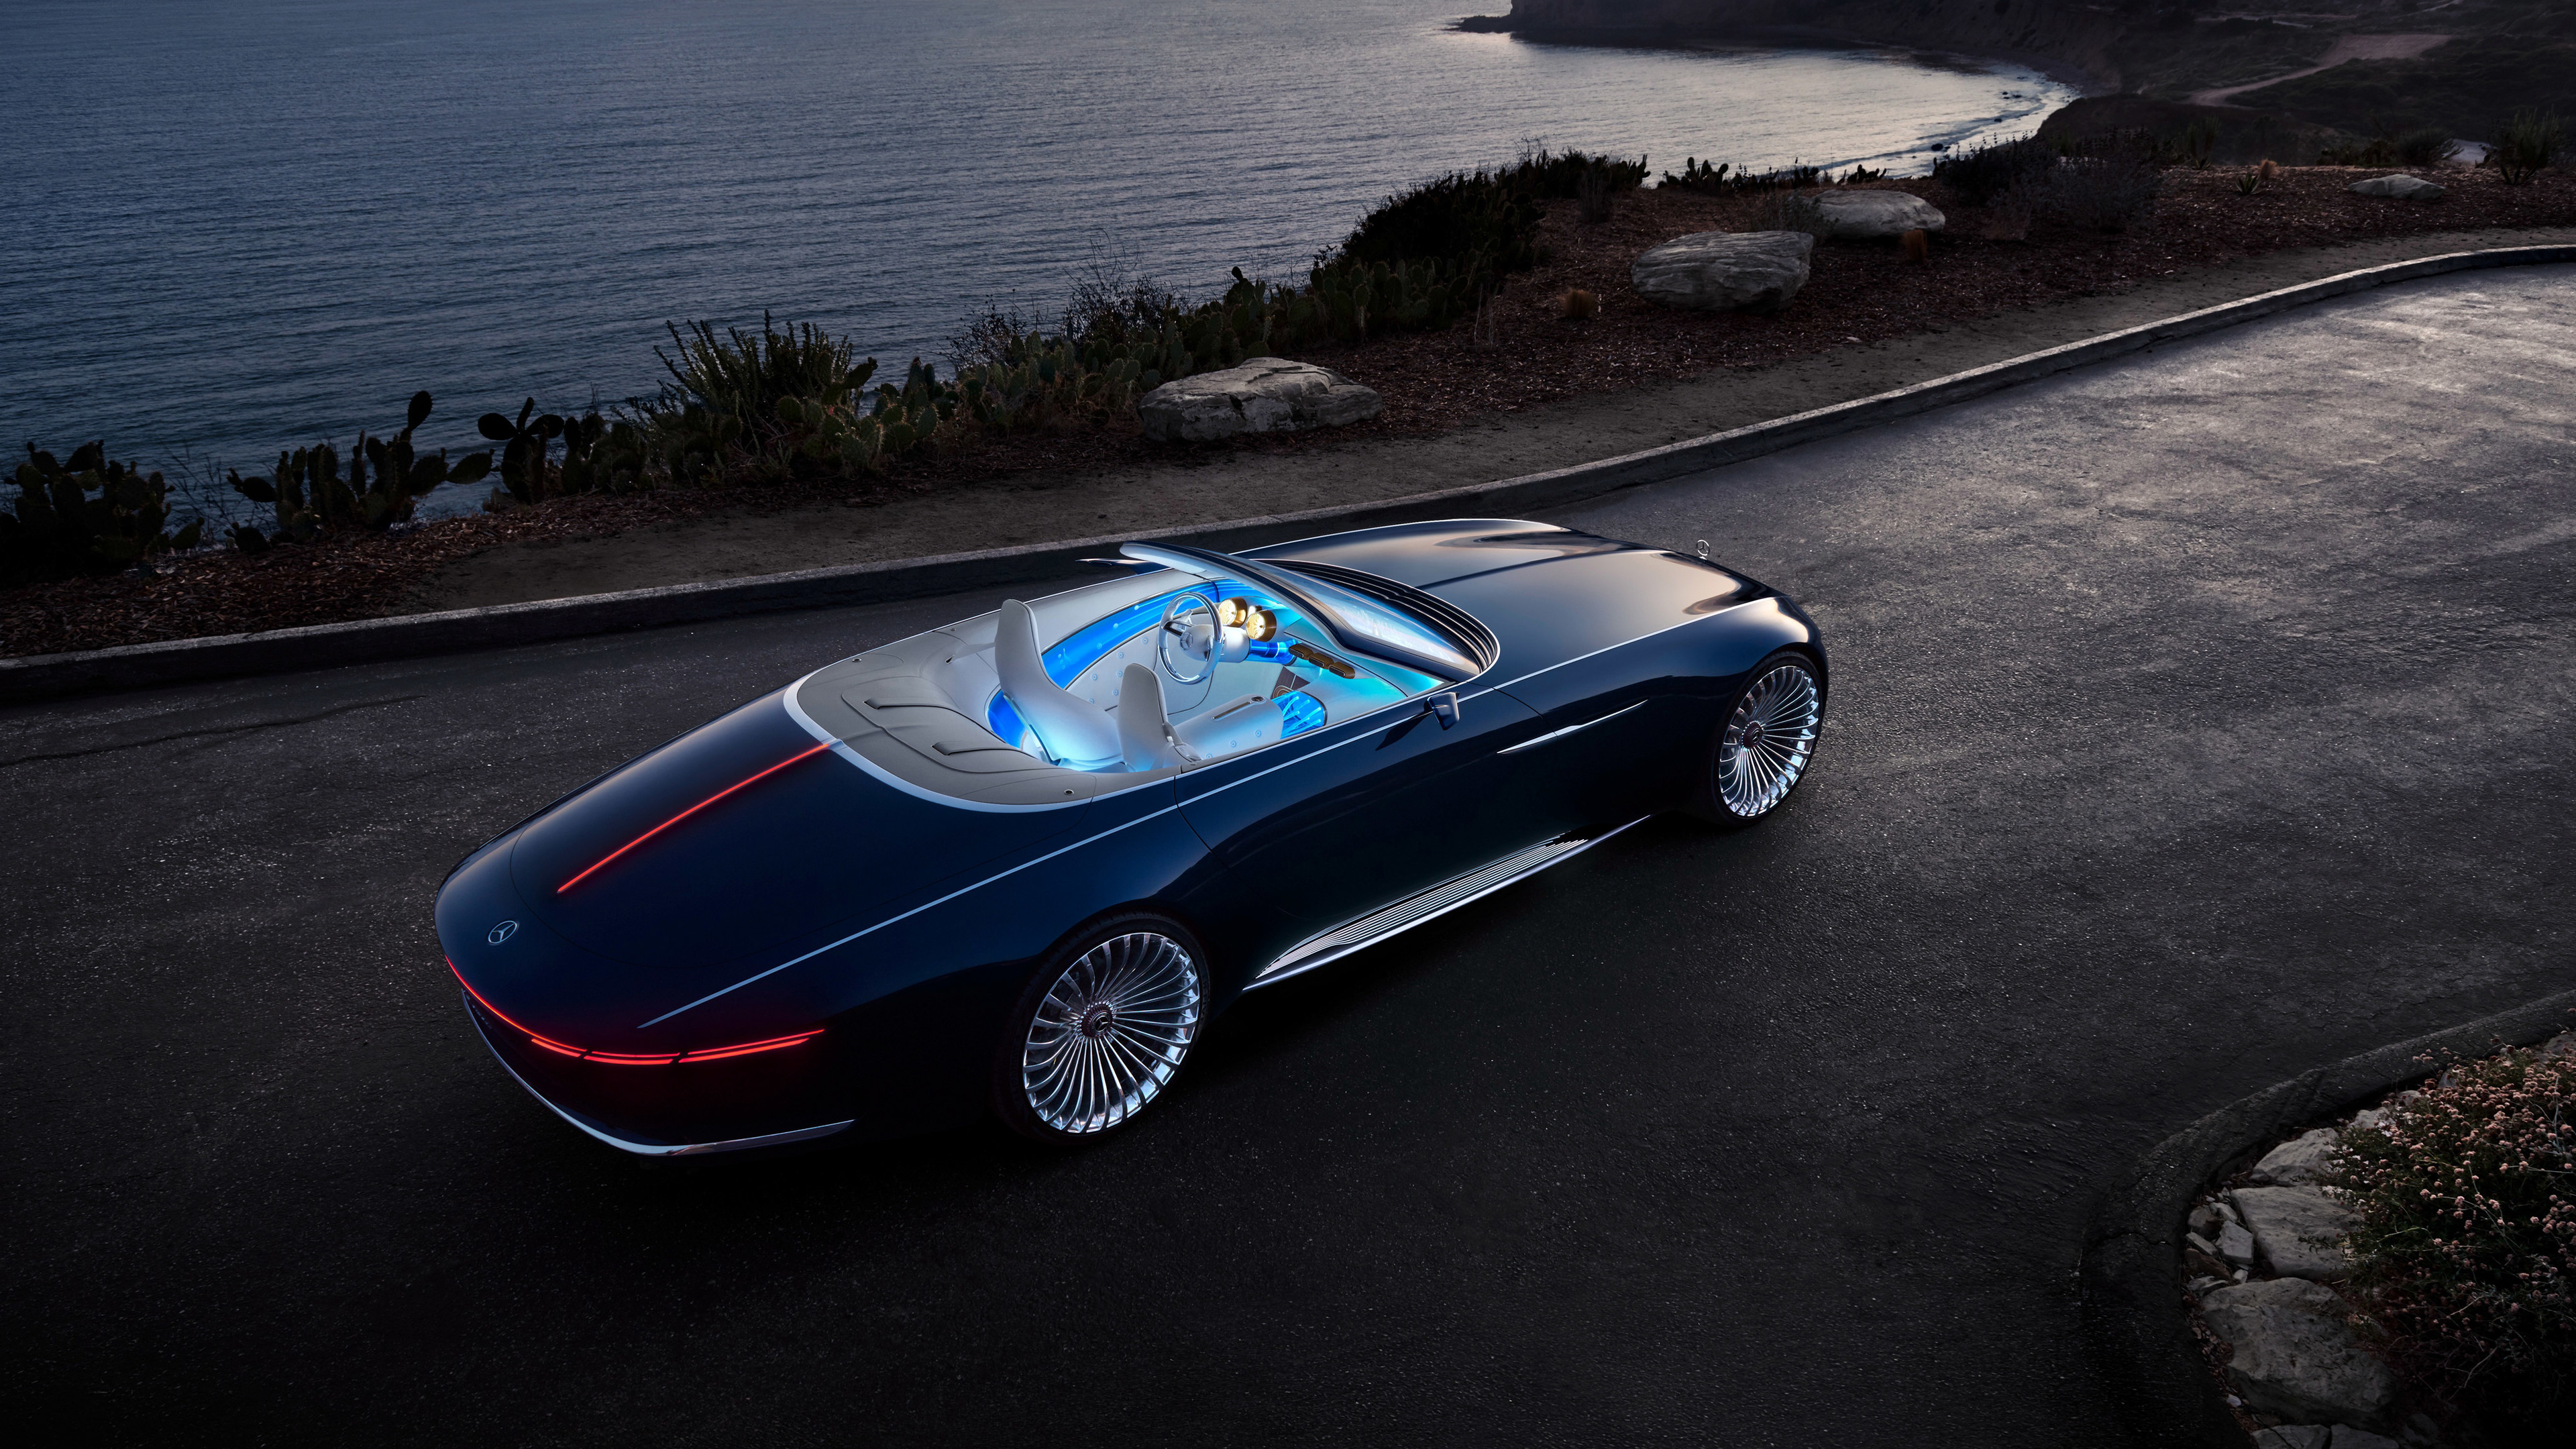 mercedes maybach 6 cabriolet 1539106969 - Mercedes Maybach 6 Cabriolet - mercedes wallpapers, mercedes maybach wallpapers, hd-wallpapers, electric cars wallpapers, concept cars wallpapers, cars wallpapers, 4k-wallpapers, 2017 cars wallpapers